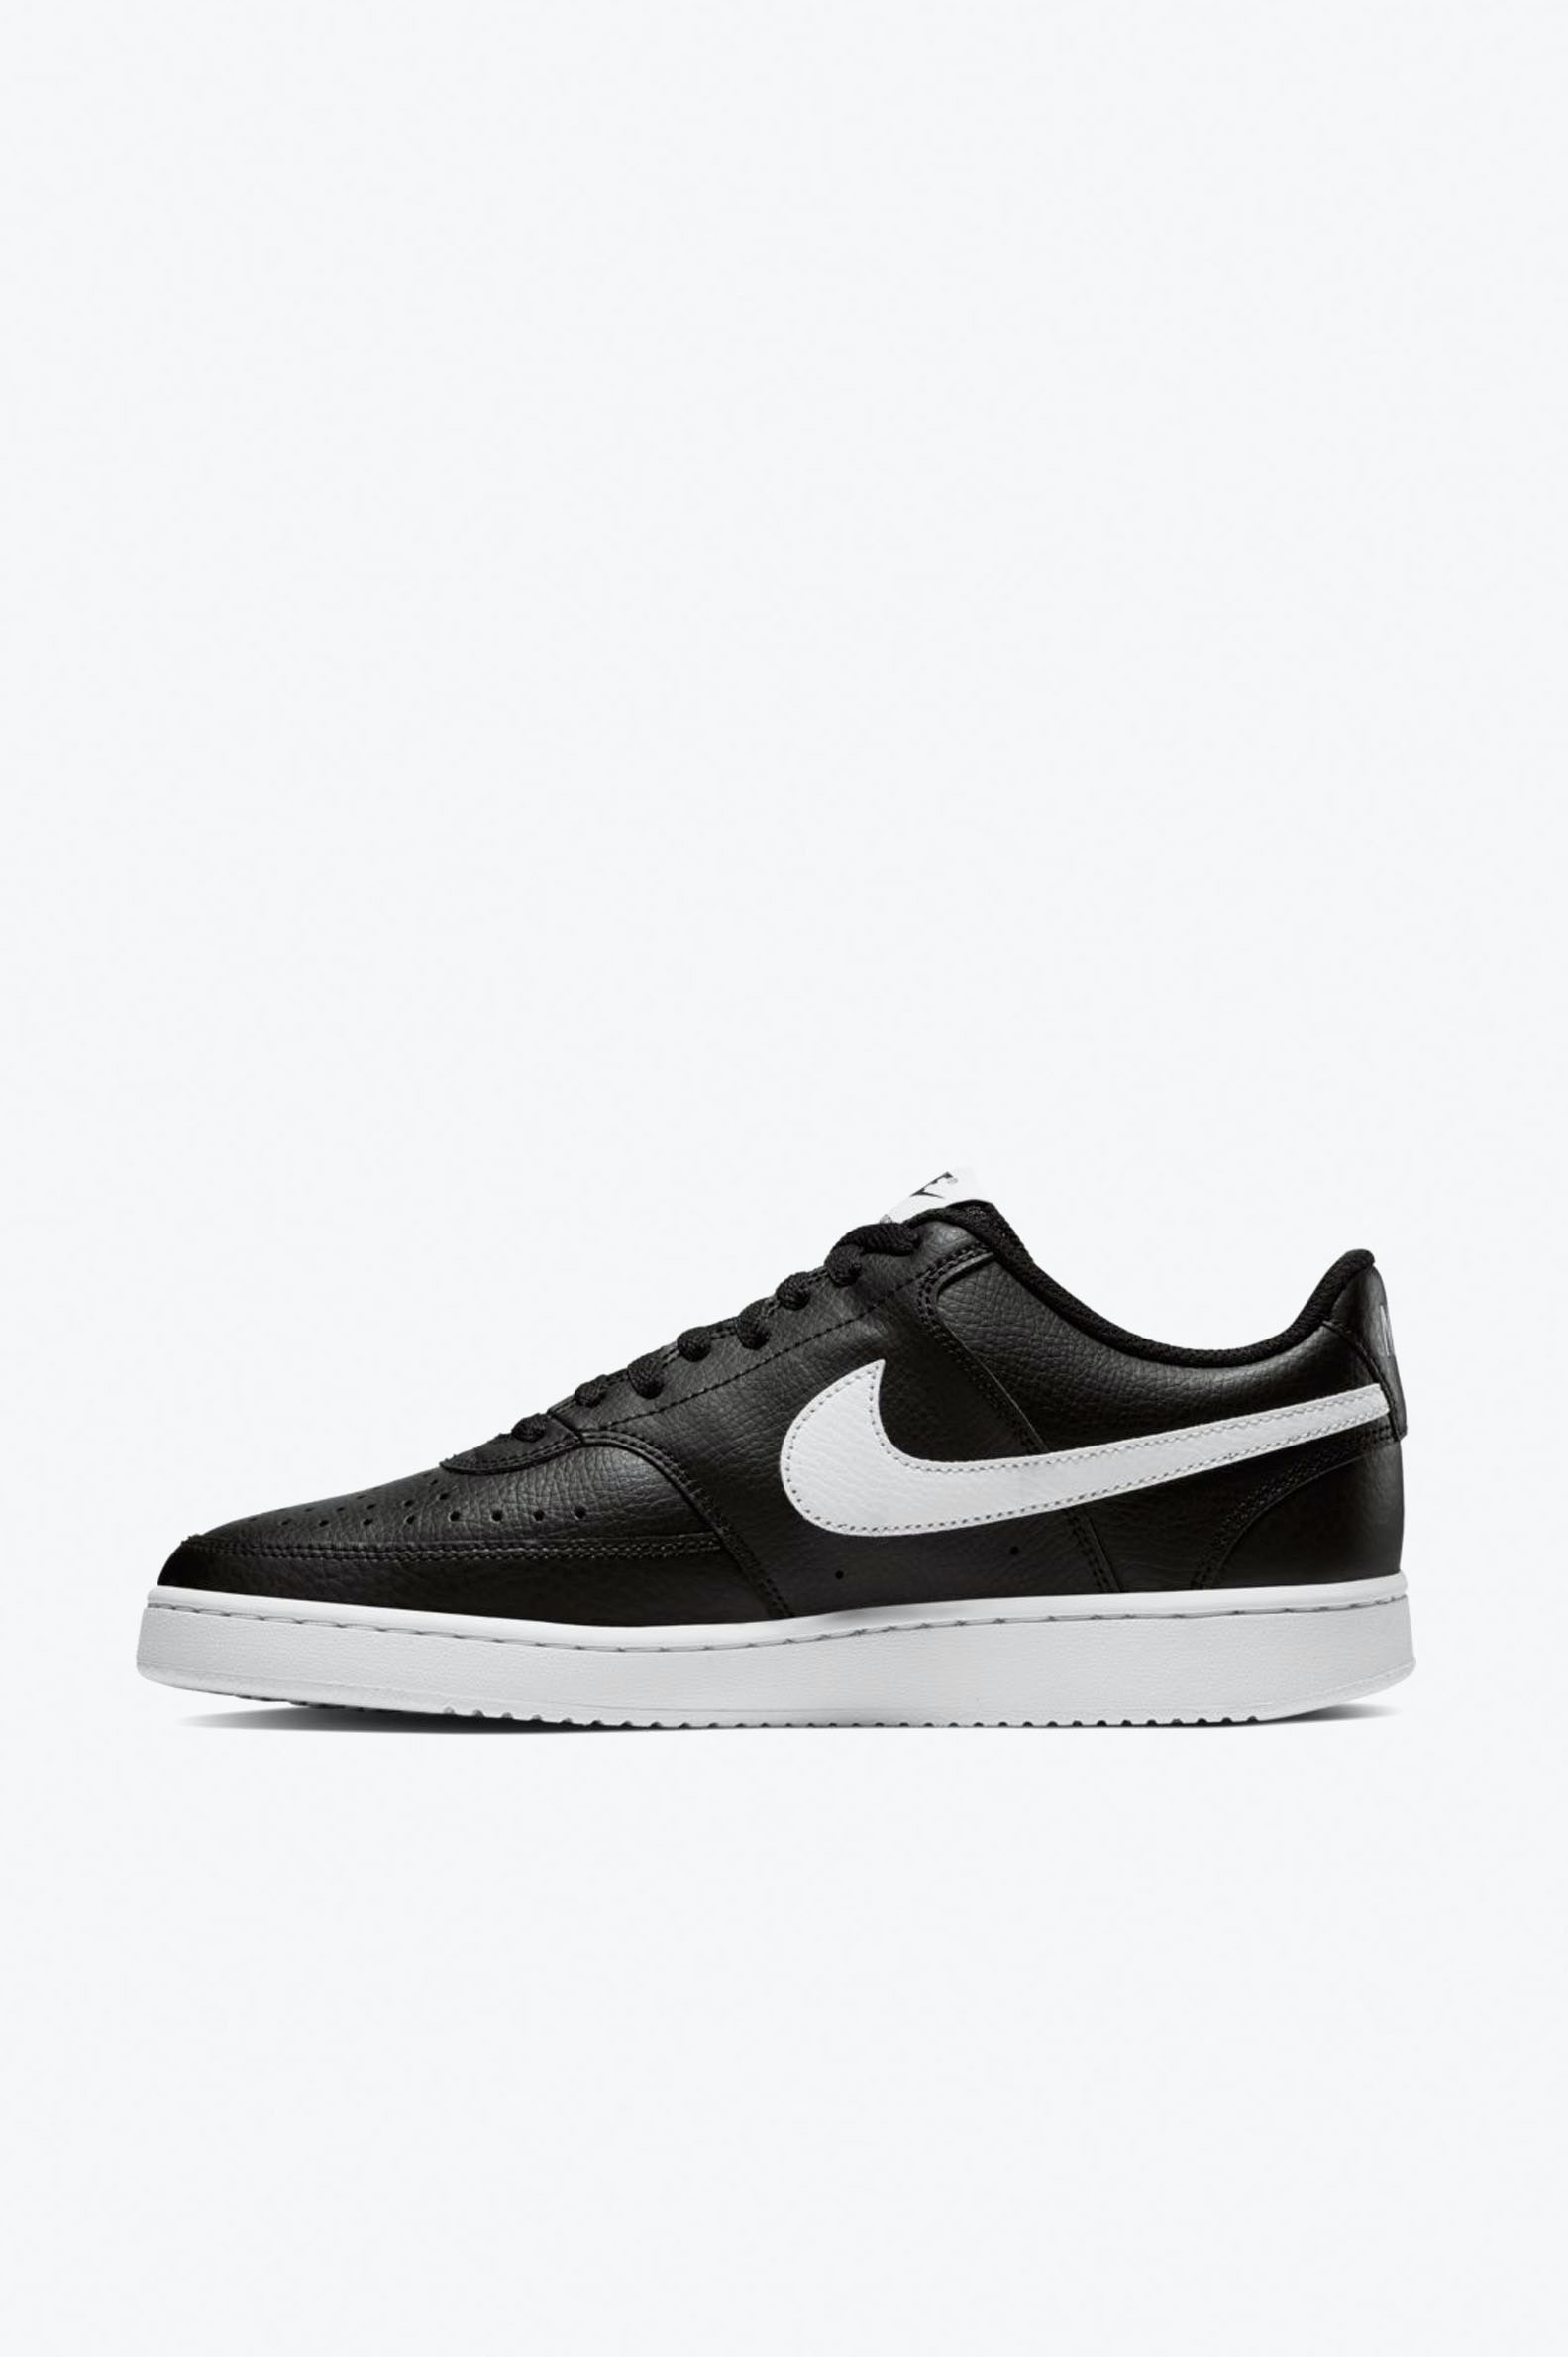 CHAUSSURES MODE NIKE COURT VISION HOMME